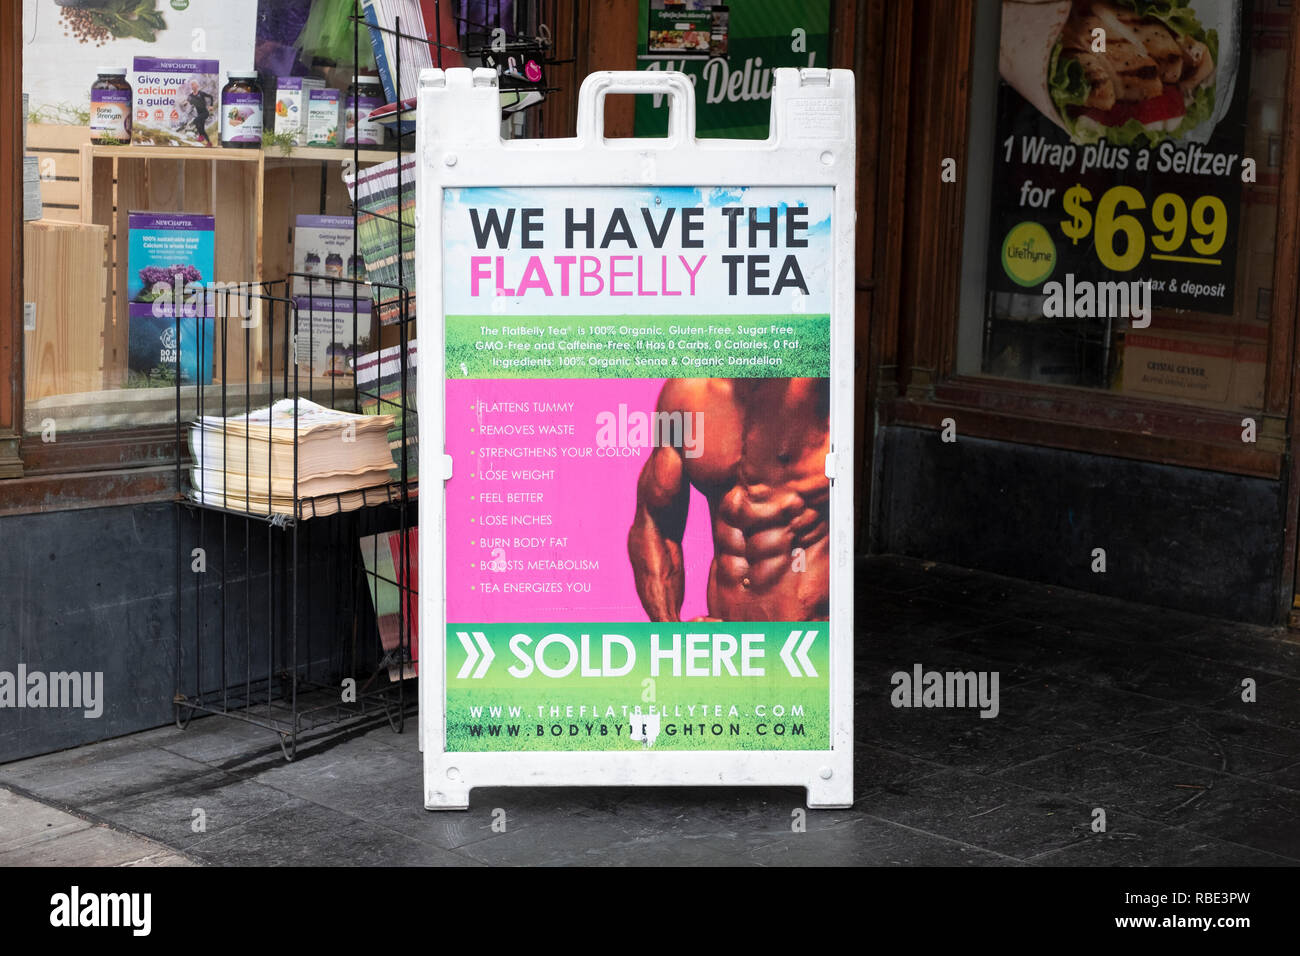 A sign outside the Lifethyme Natural Market advertising Flat Belly tea which purports to flatten stomachs, burn body fat, boost metabolism and more. - Stock Image